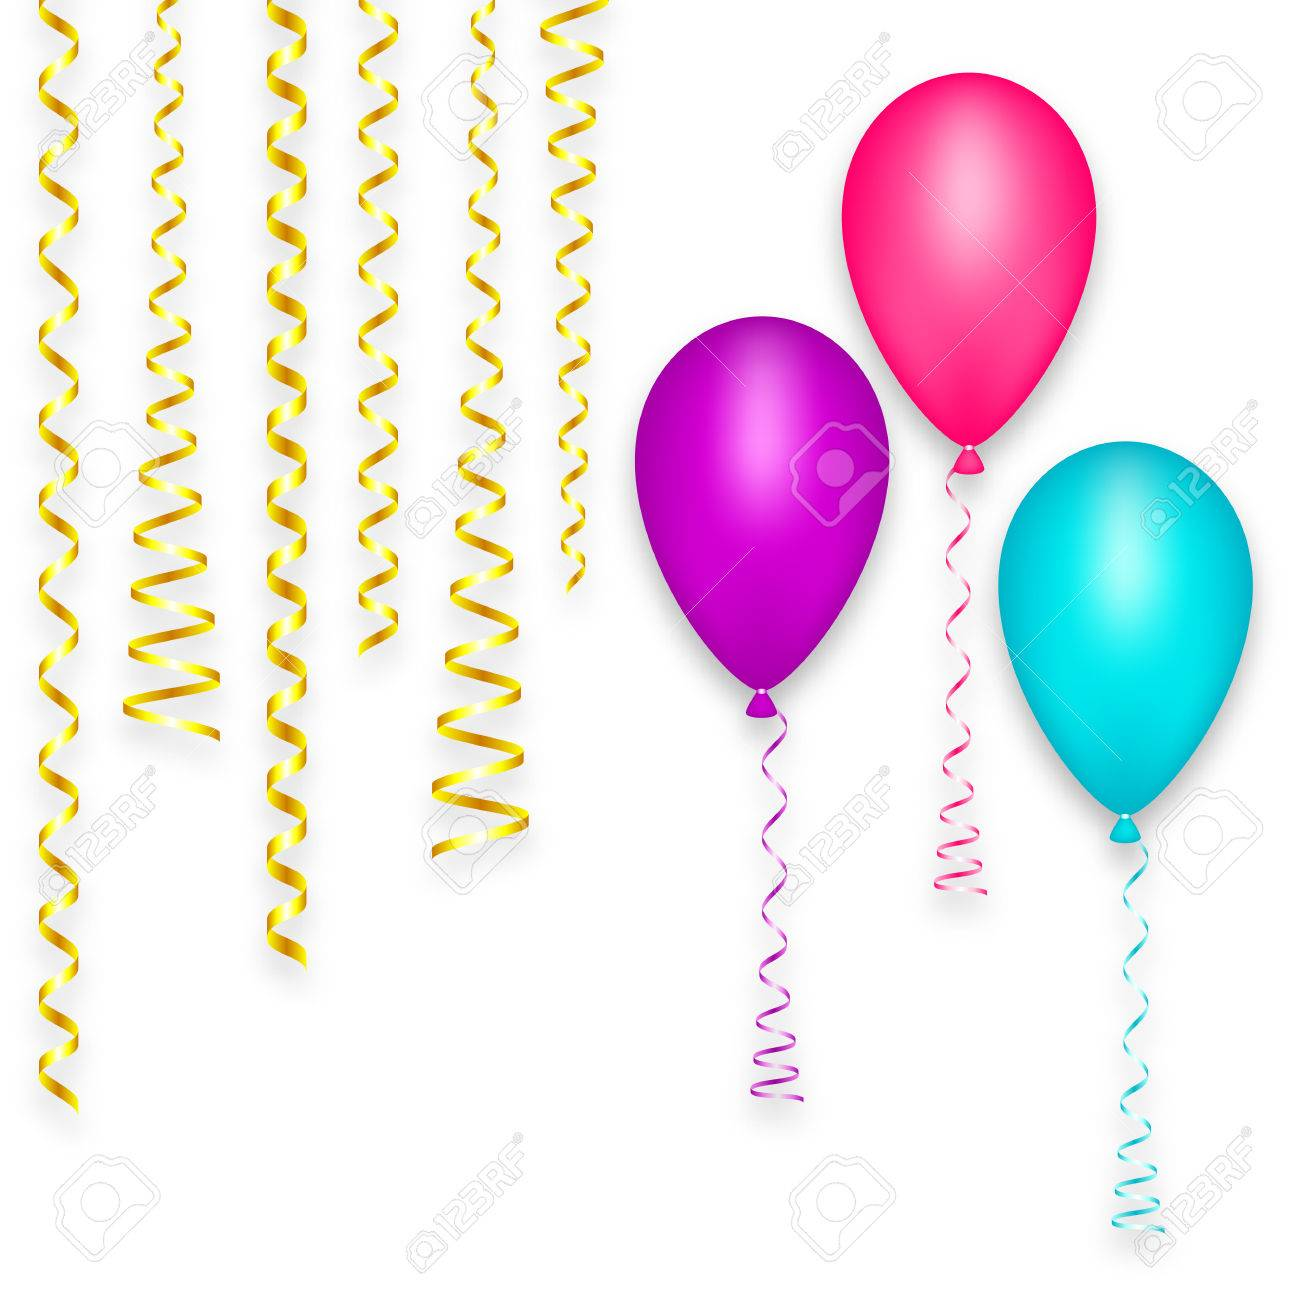 Design Greeting Card Background Balloon Happy Birthday Party